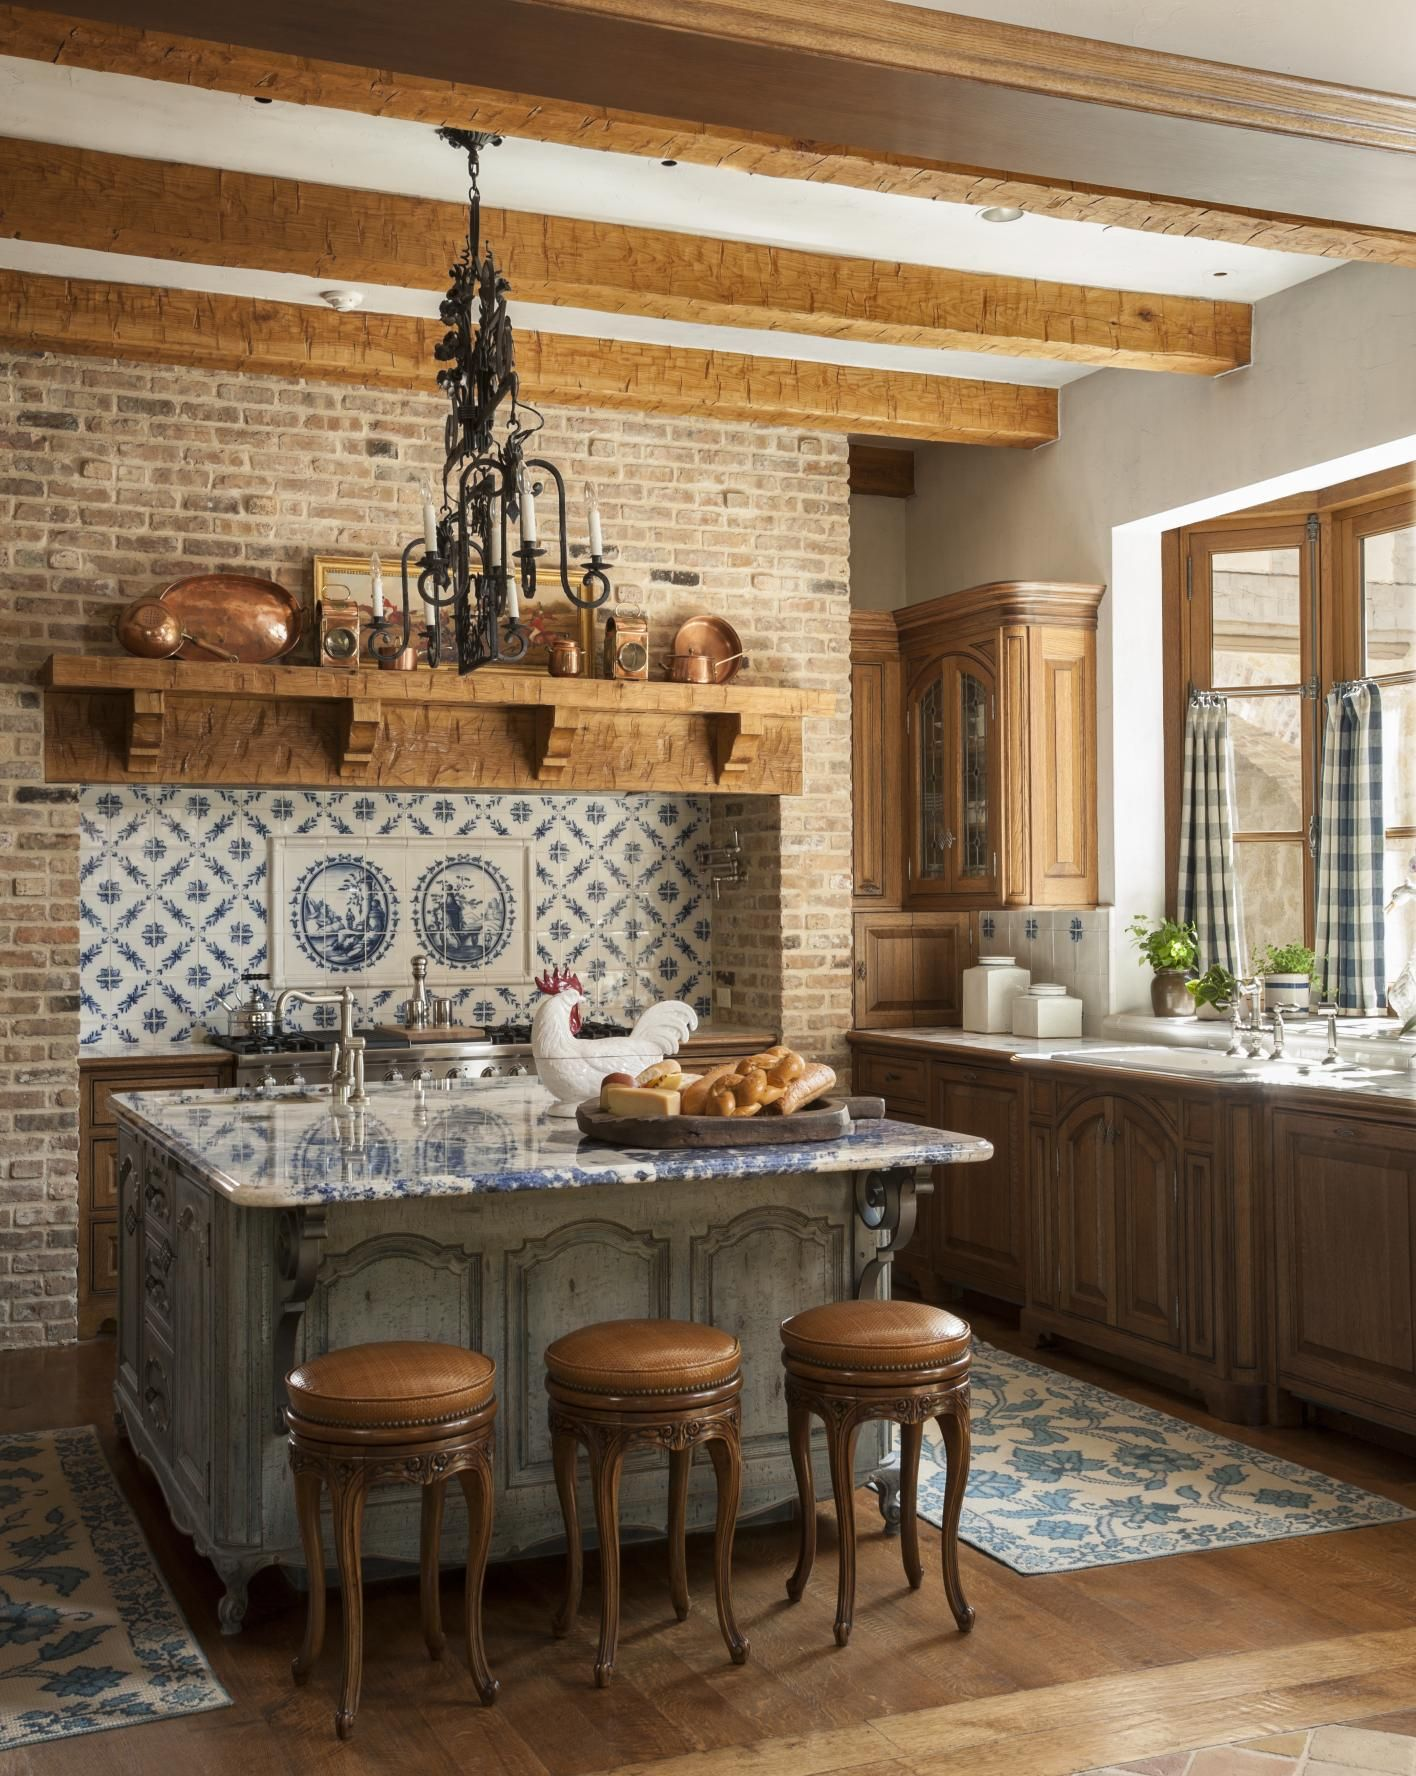 Country French Kitchens Country kitchen, Country kitchen